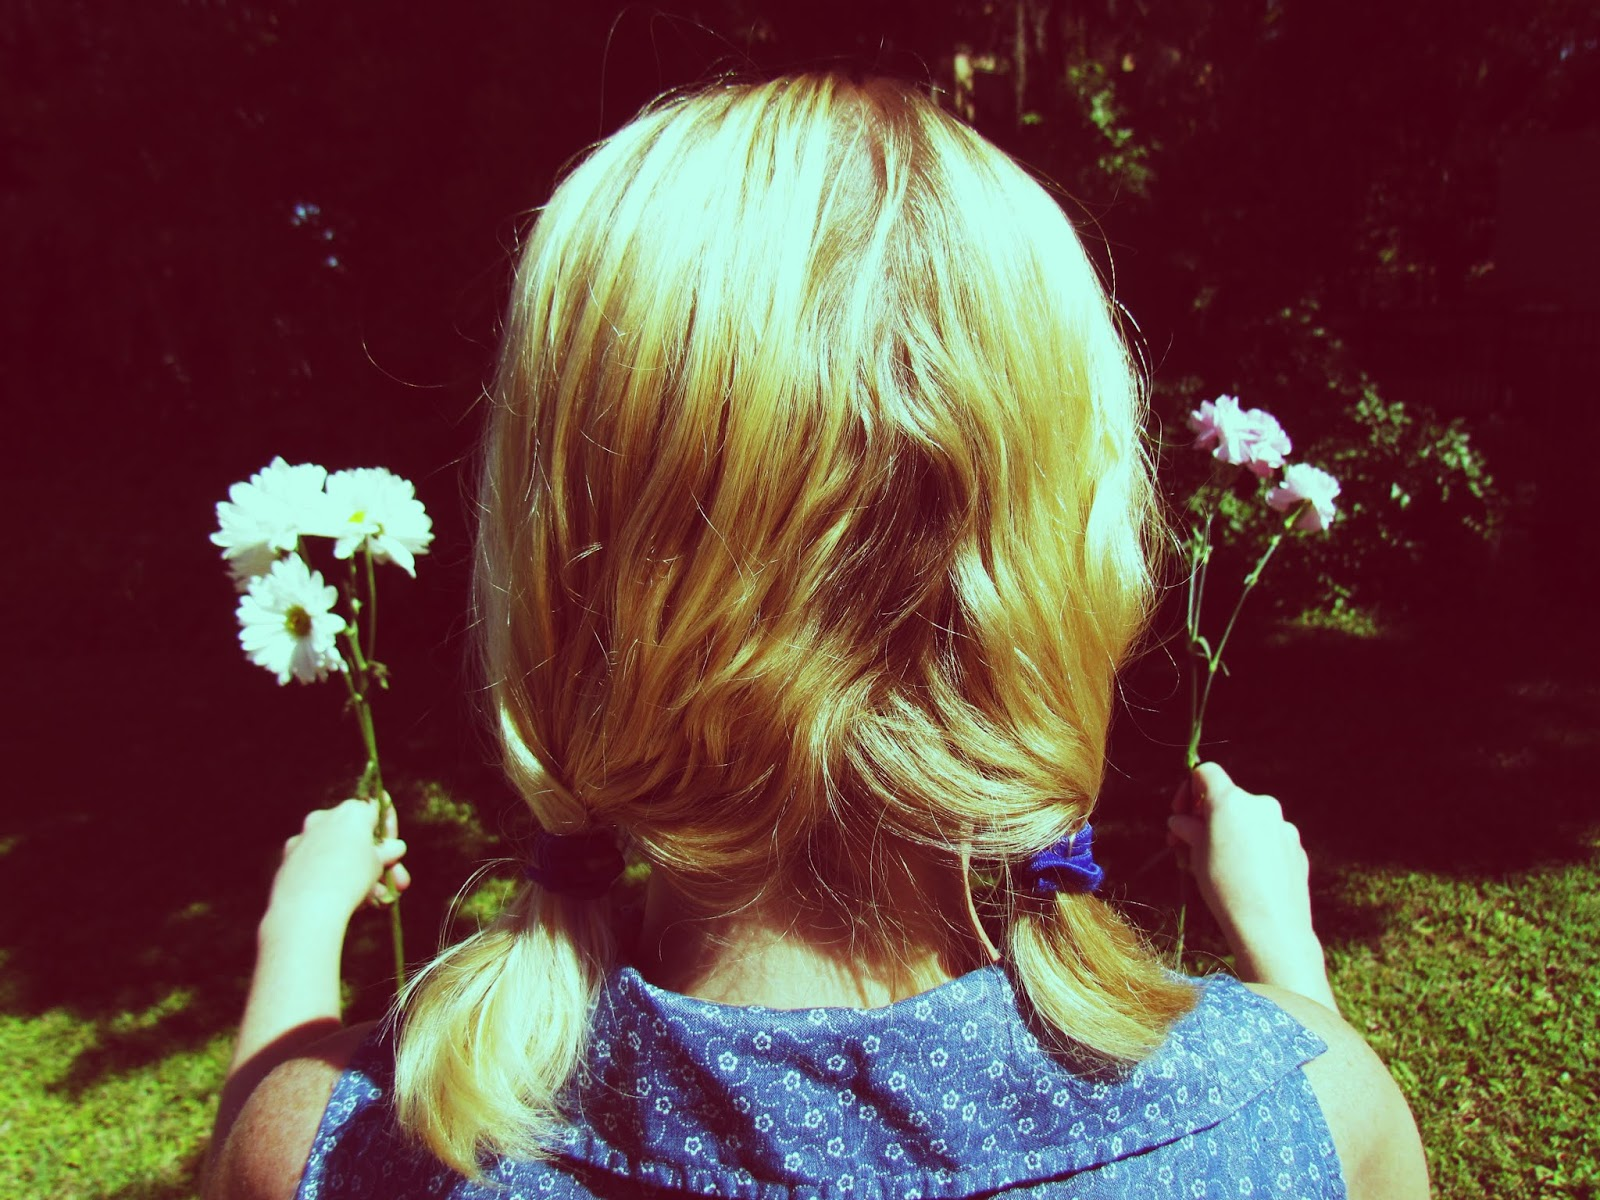 Finding Wildflowers in the Backyard + Girl in Pigtails Hiking Style